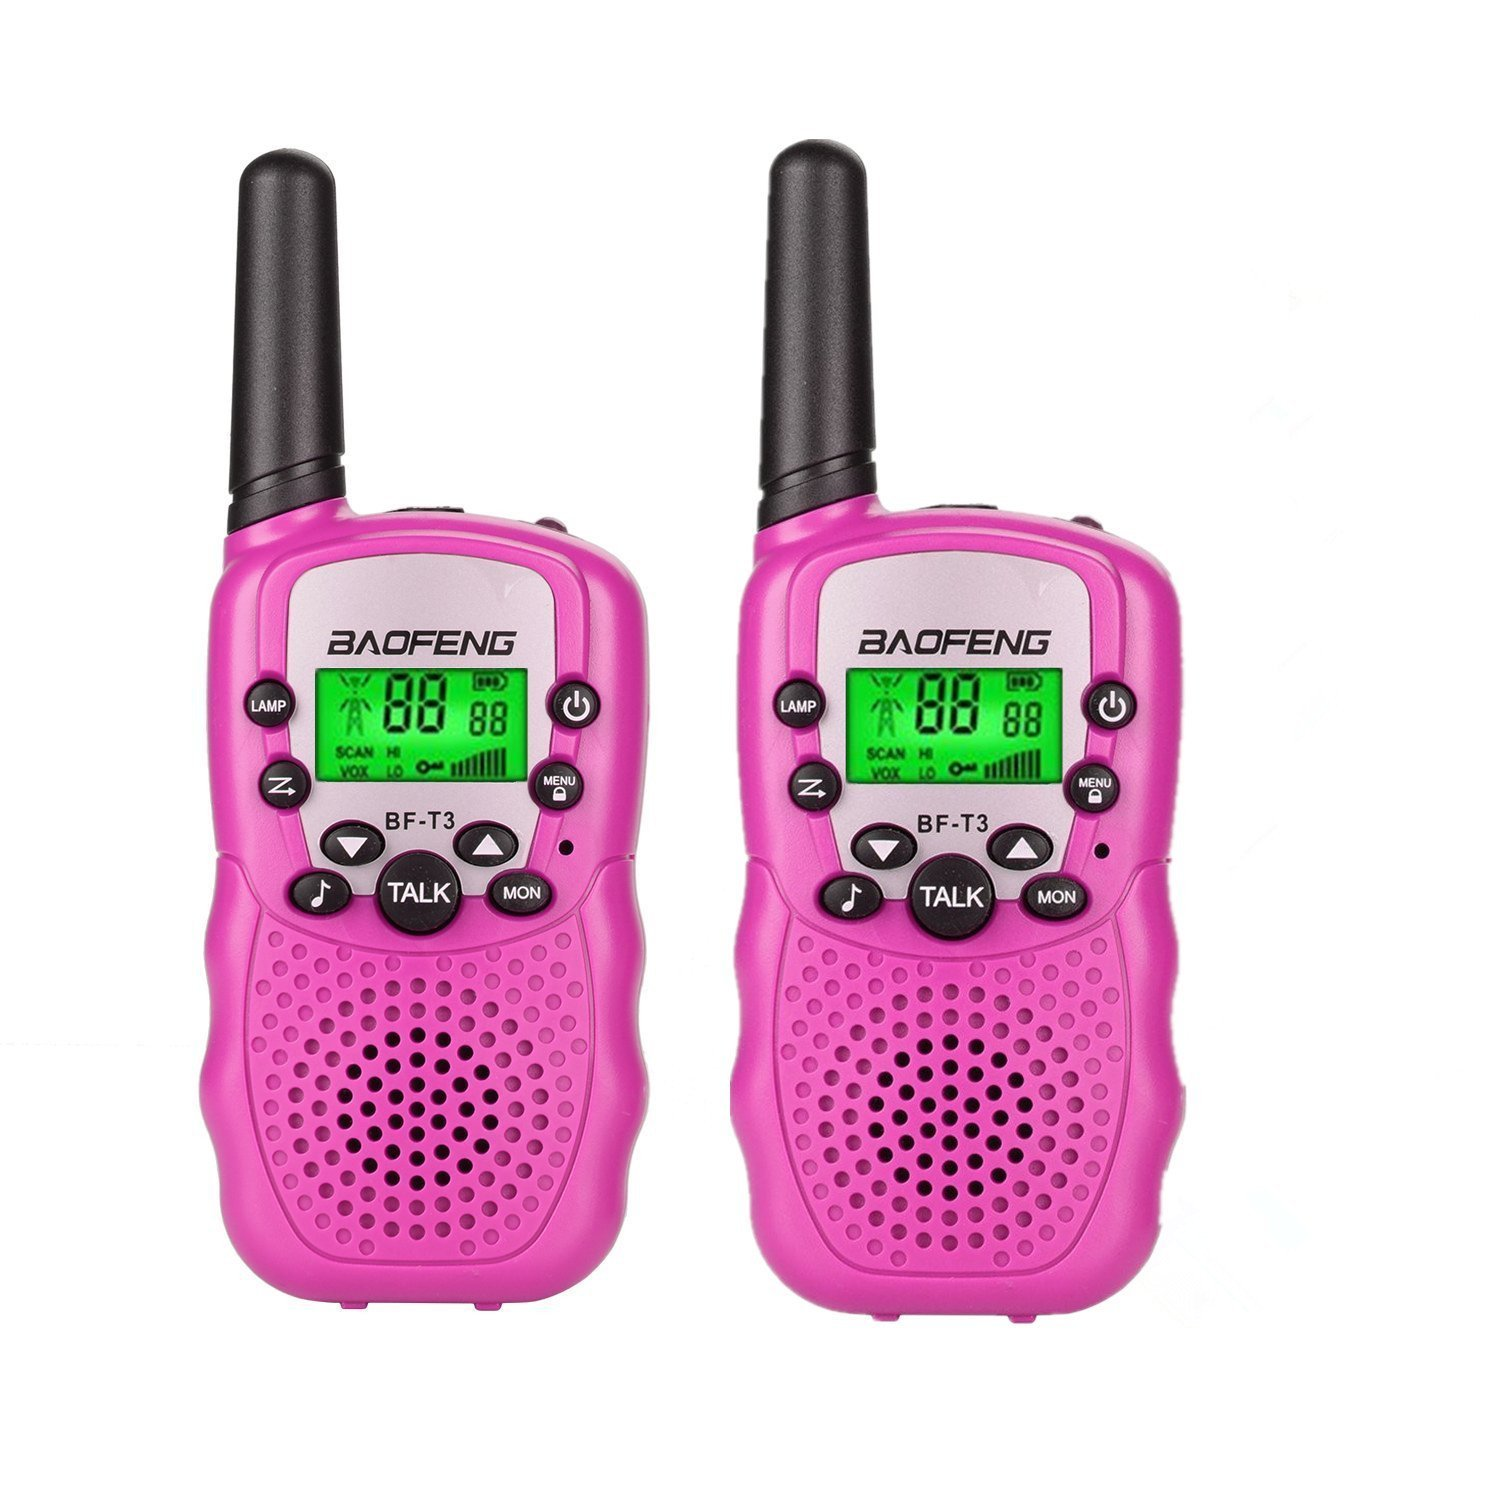 Toys for 3-12 Year Old Girls, Kids Walkie Talkies for Kids Toys for 3-12 Year Old Girls Gift for Age 3-12 Girls Pink